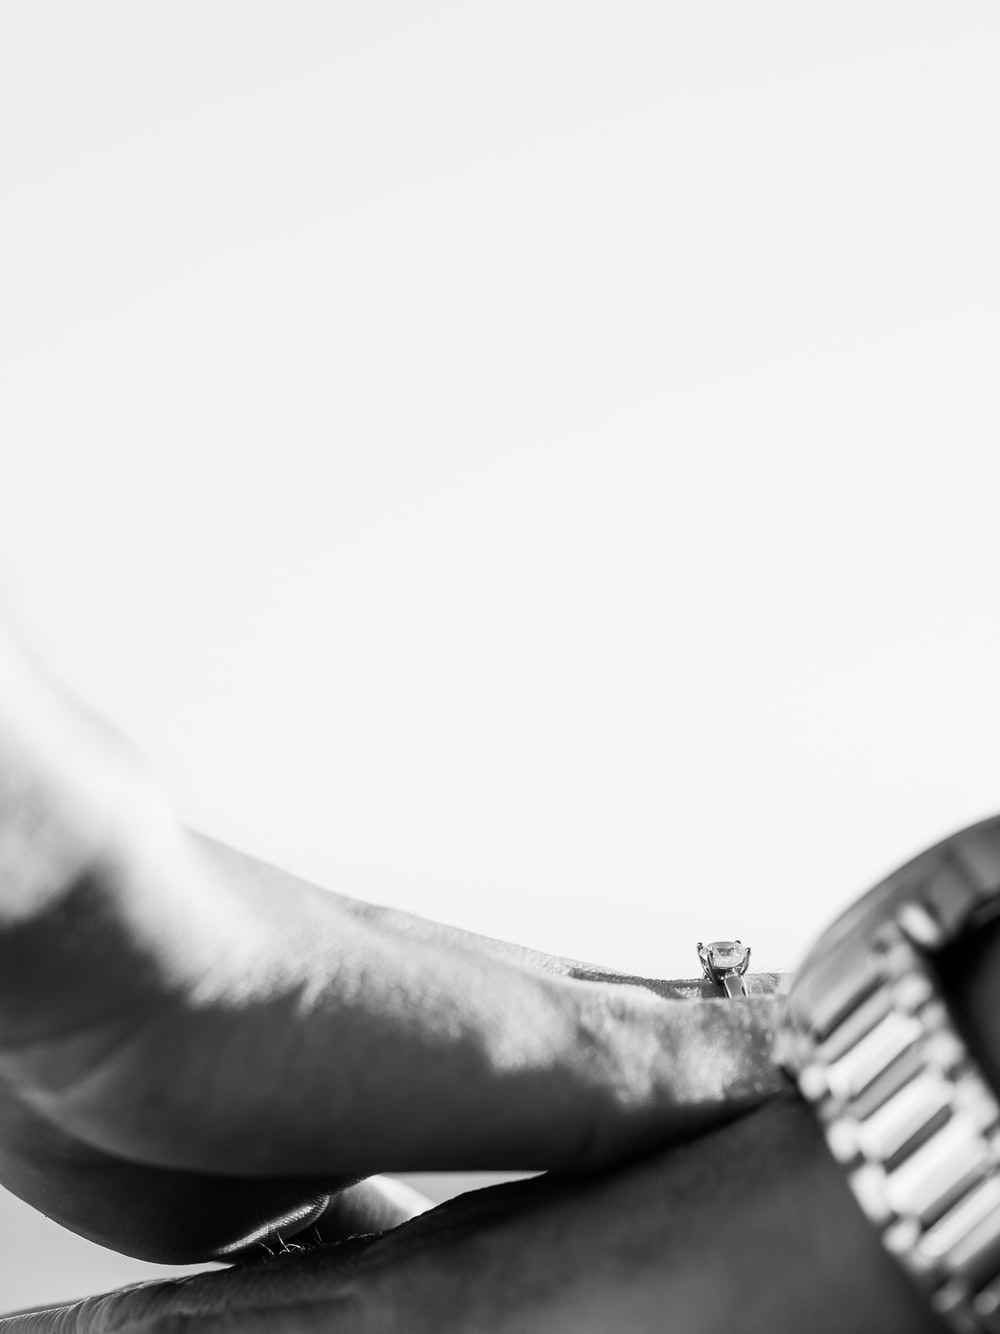 grayscale photo of person wearing watch